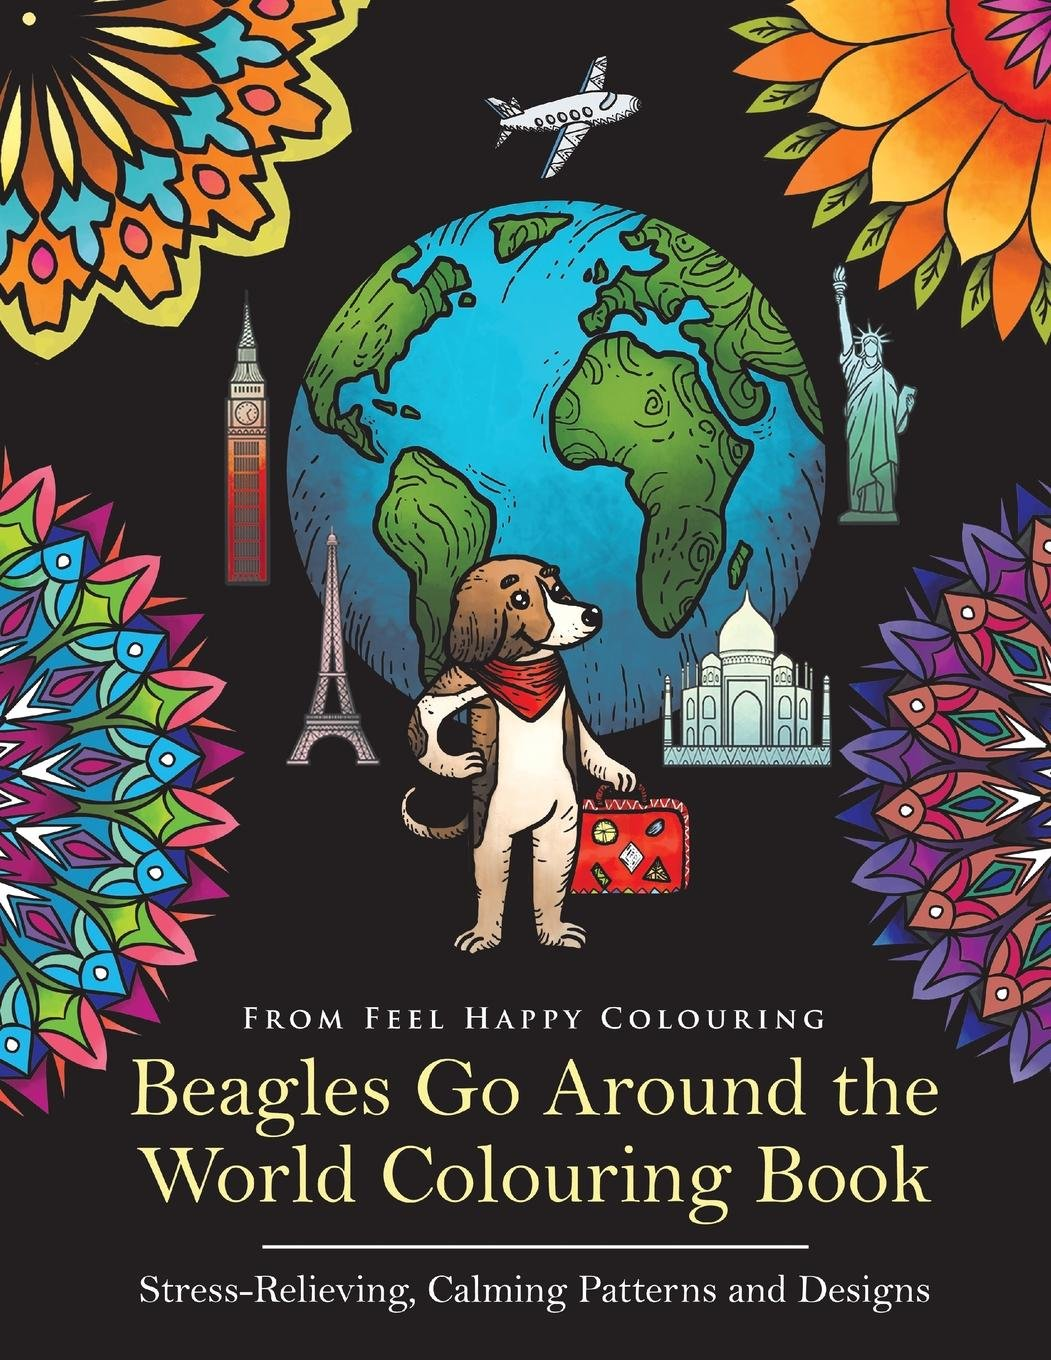 Beagles Go Around the World Colouring Book: Beagle Coloring Book – Perfect Beagle Gifts Idea for Adults and Older Kids…